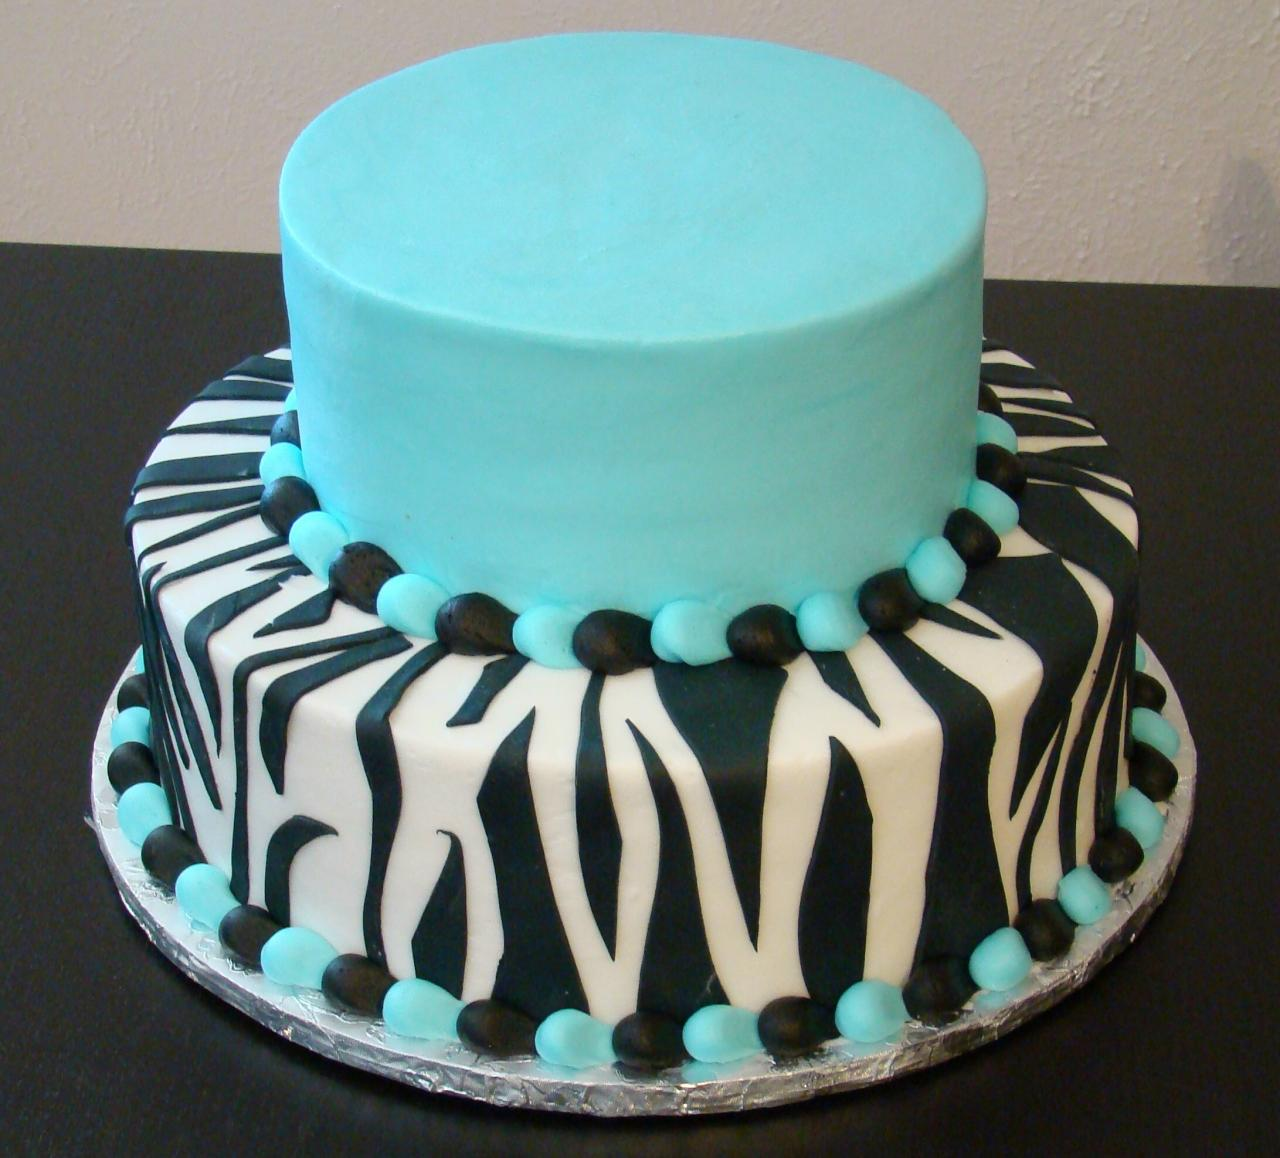 Remarkable Zebra Cakes Designs The Cake Boutique Funny Birthday Cards Online Sheoxdamsfinfo